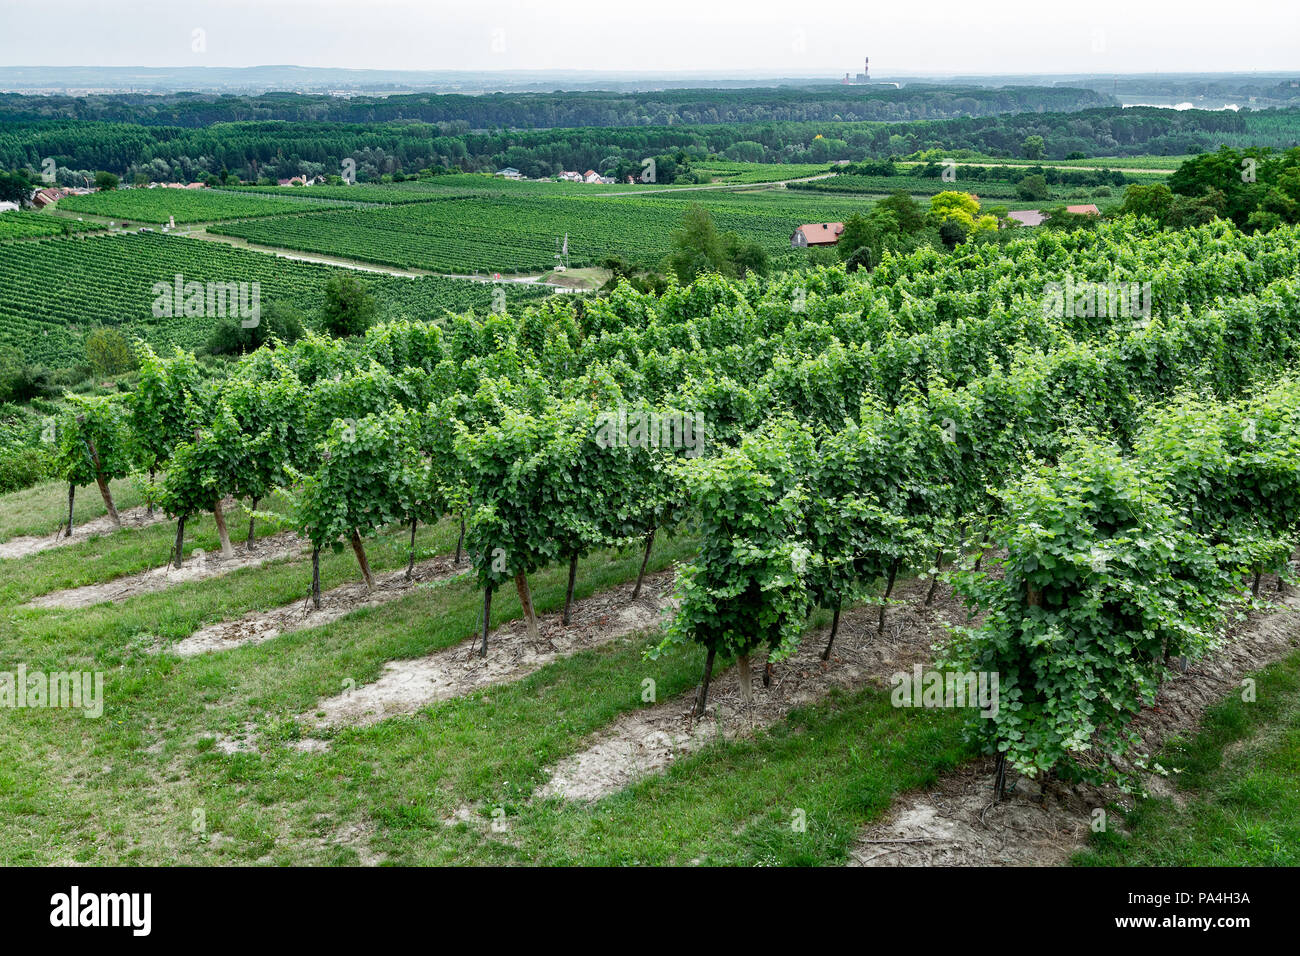 viticulture at Hollenburg, Kremstal, Lower Austria, Austria Stock Photo